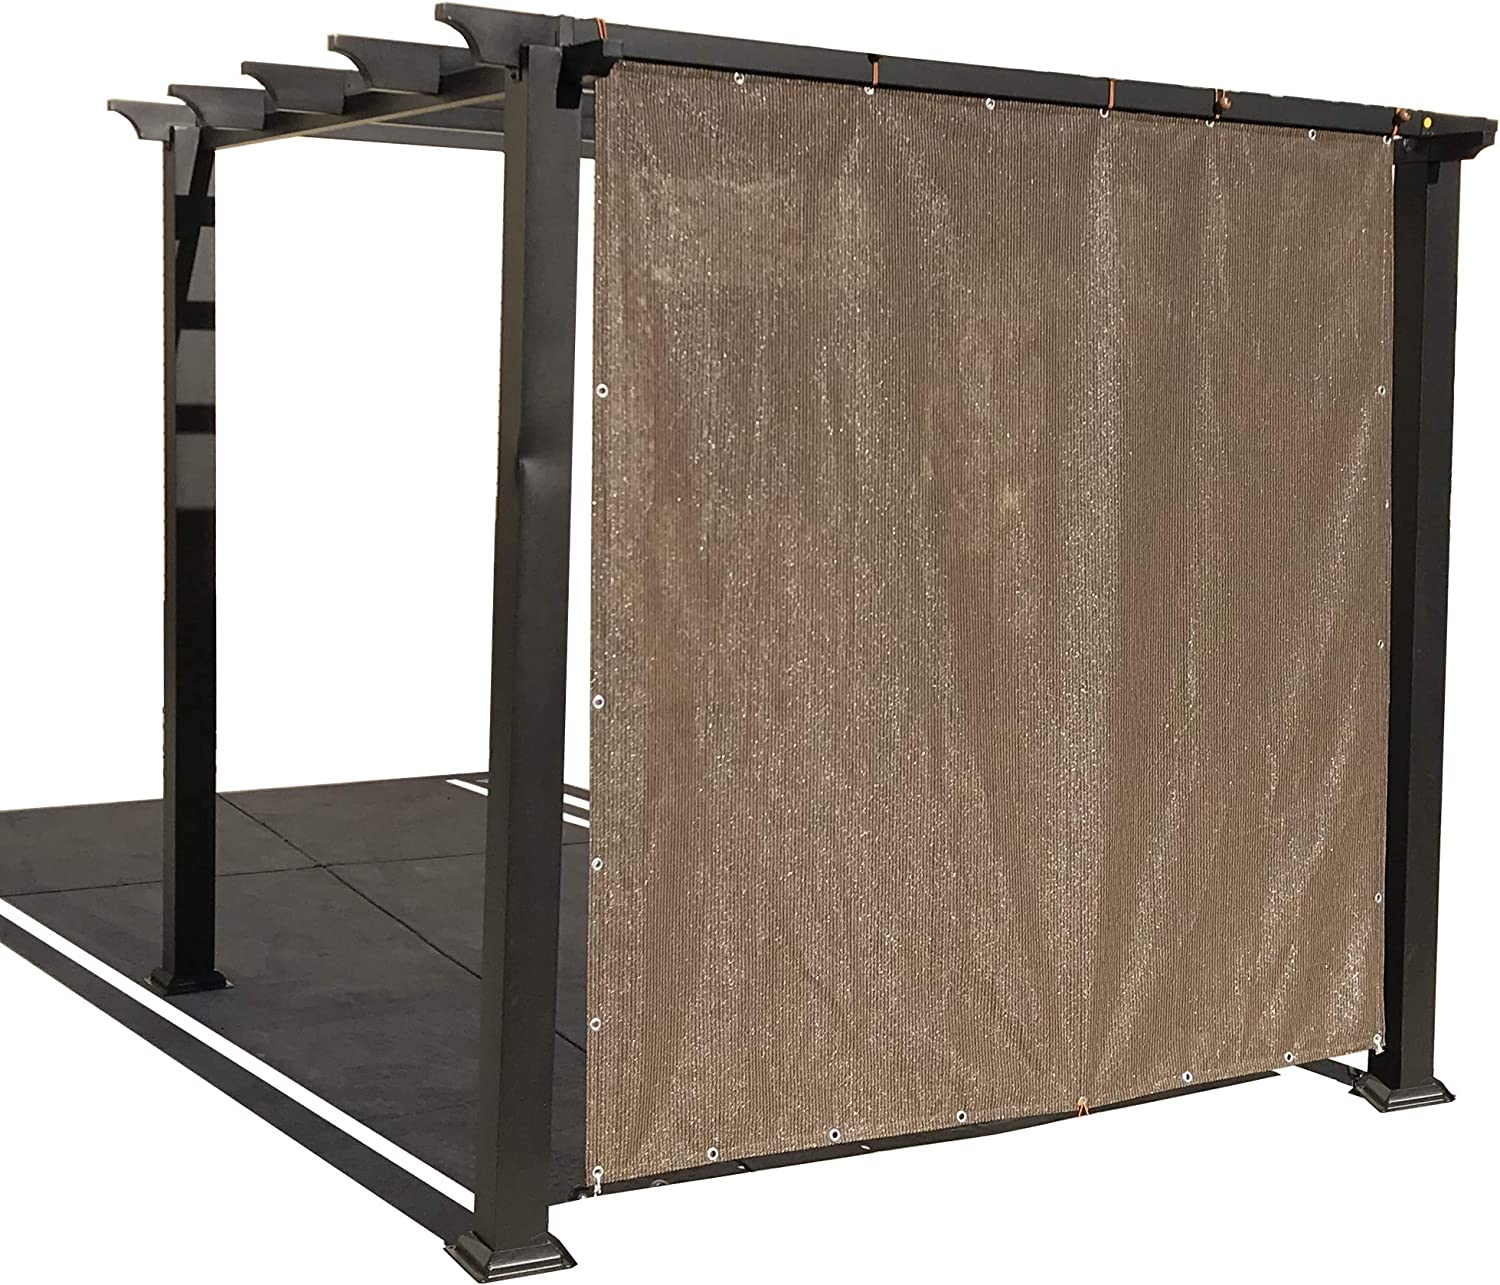 Alion Home Sun Shade Privacy Panel with Grommets and Hems on 4 Sides for Patio, Awning, Window, Pergola or Gazebo - Mocha Brown (12' x 10')